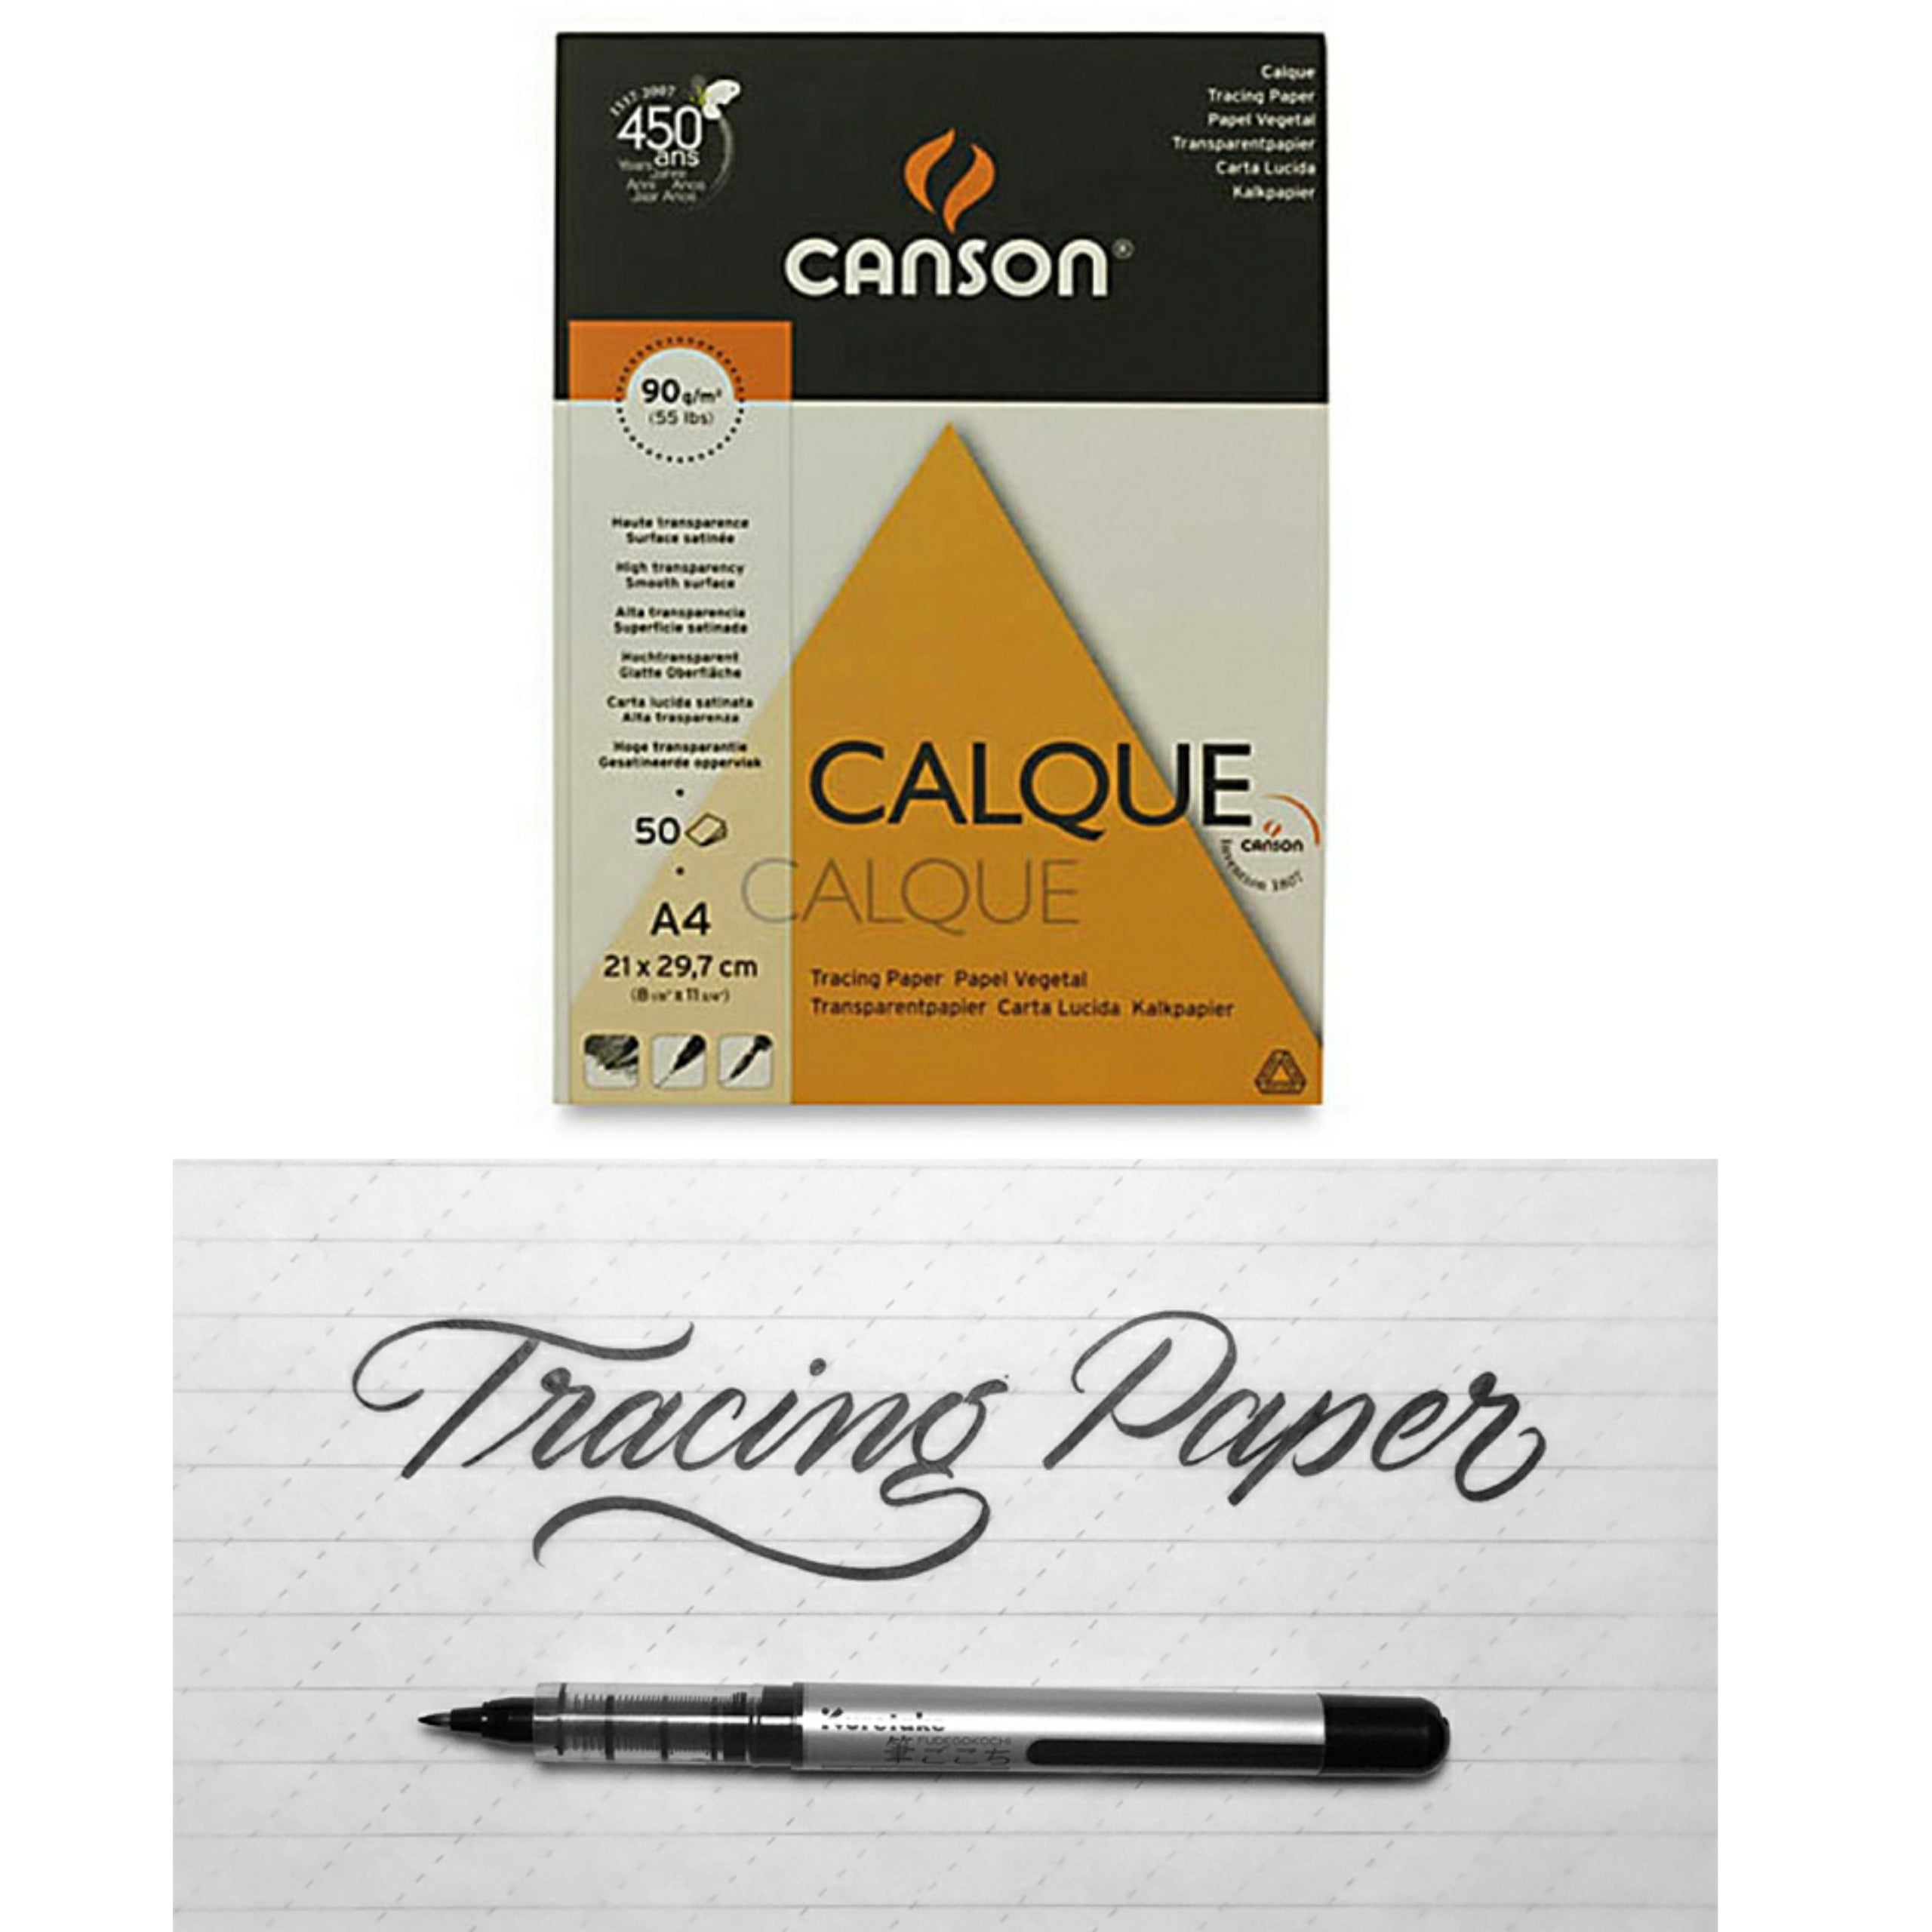 Canson Calque Tracing Paper